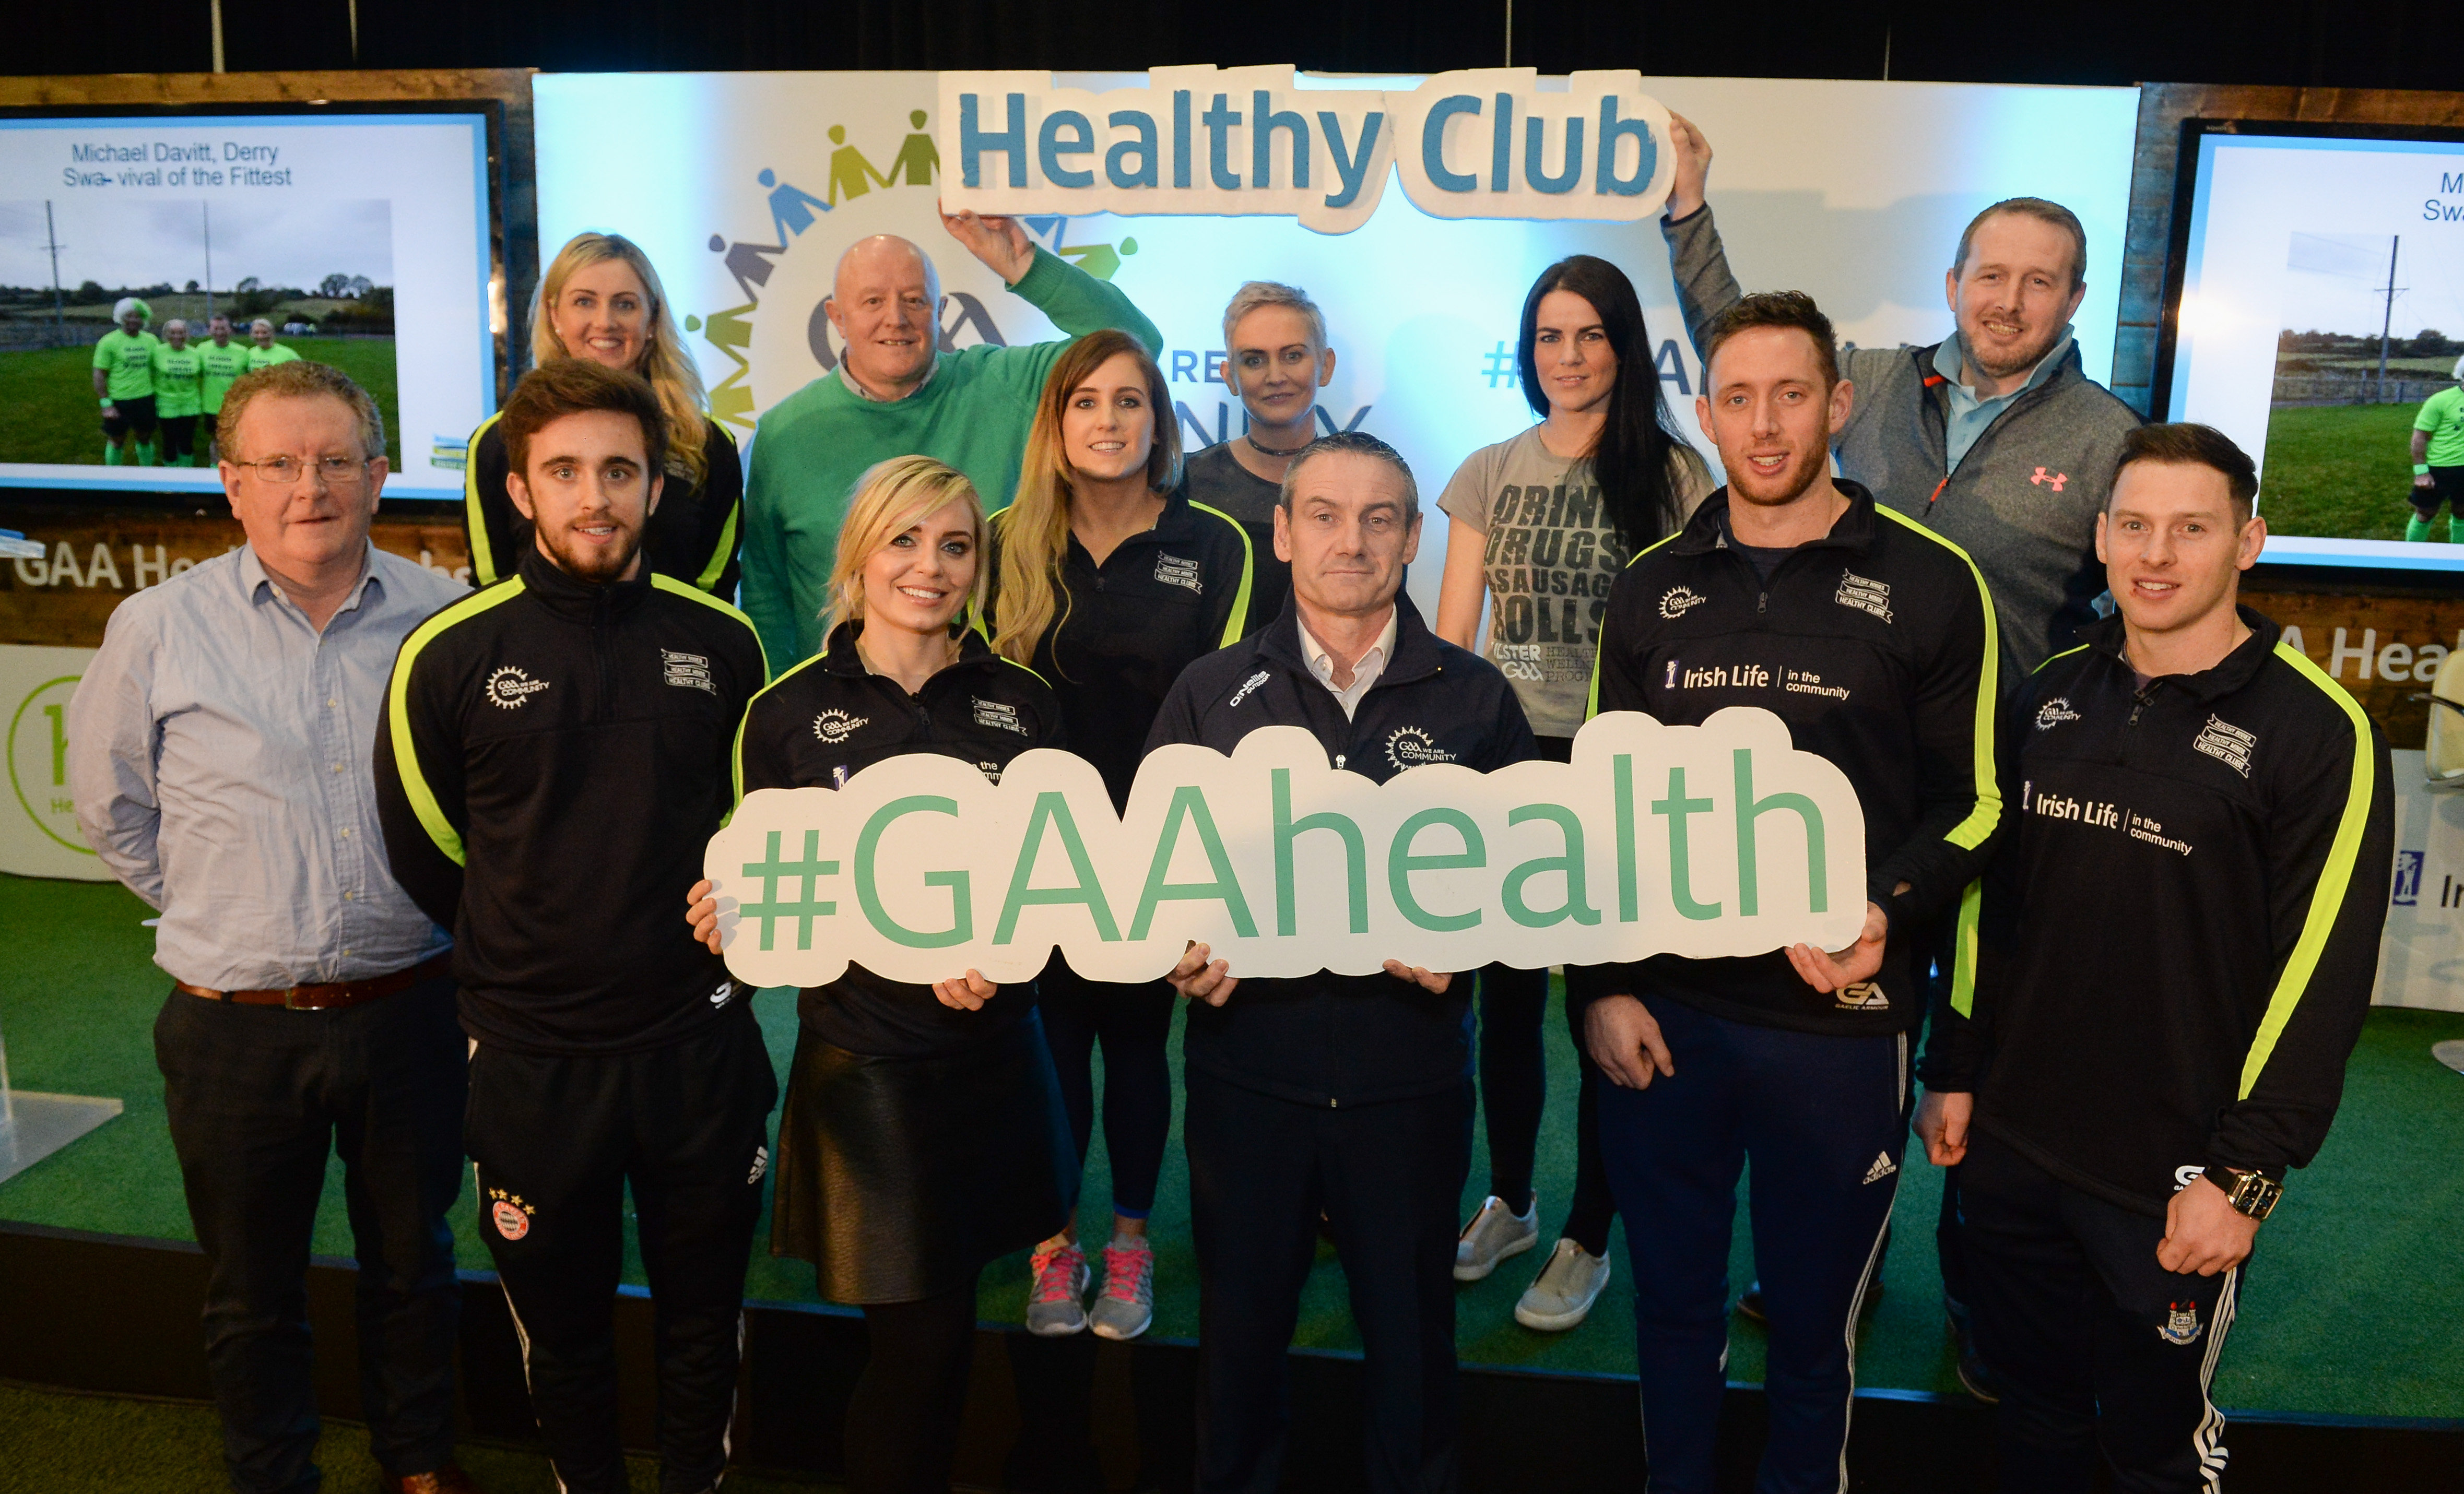 Healthy Clubs Roadshow gives valuable insight to well-being initiatives